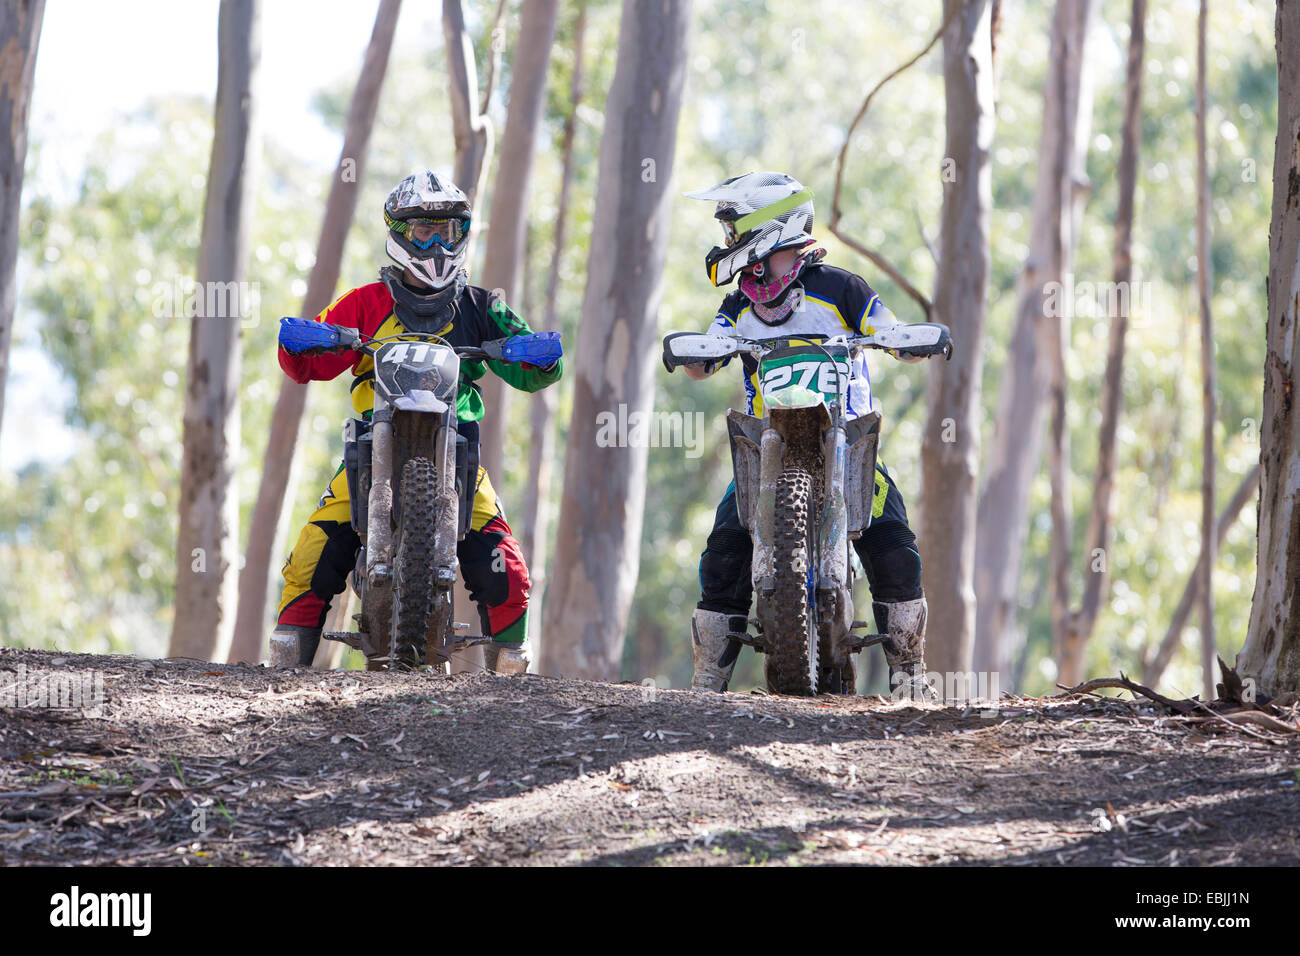 Two young male motocross riders chatting in forest - Stock Image